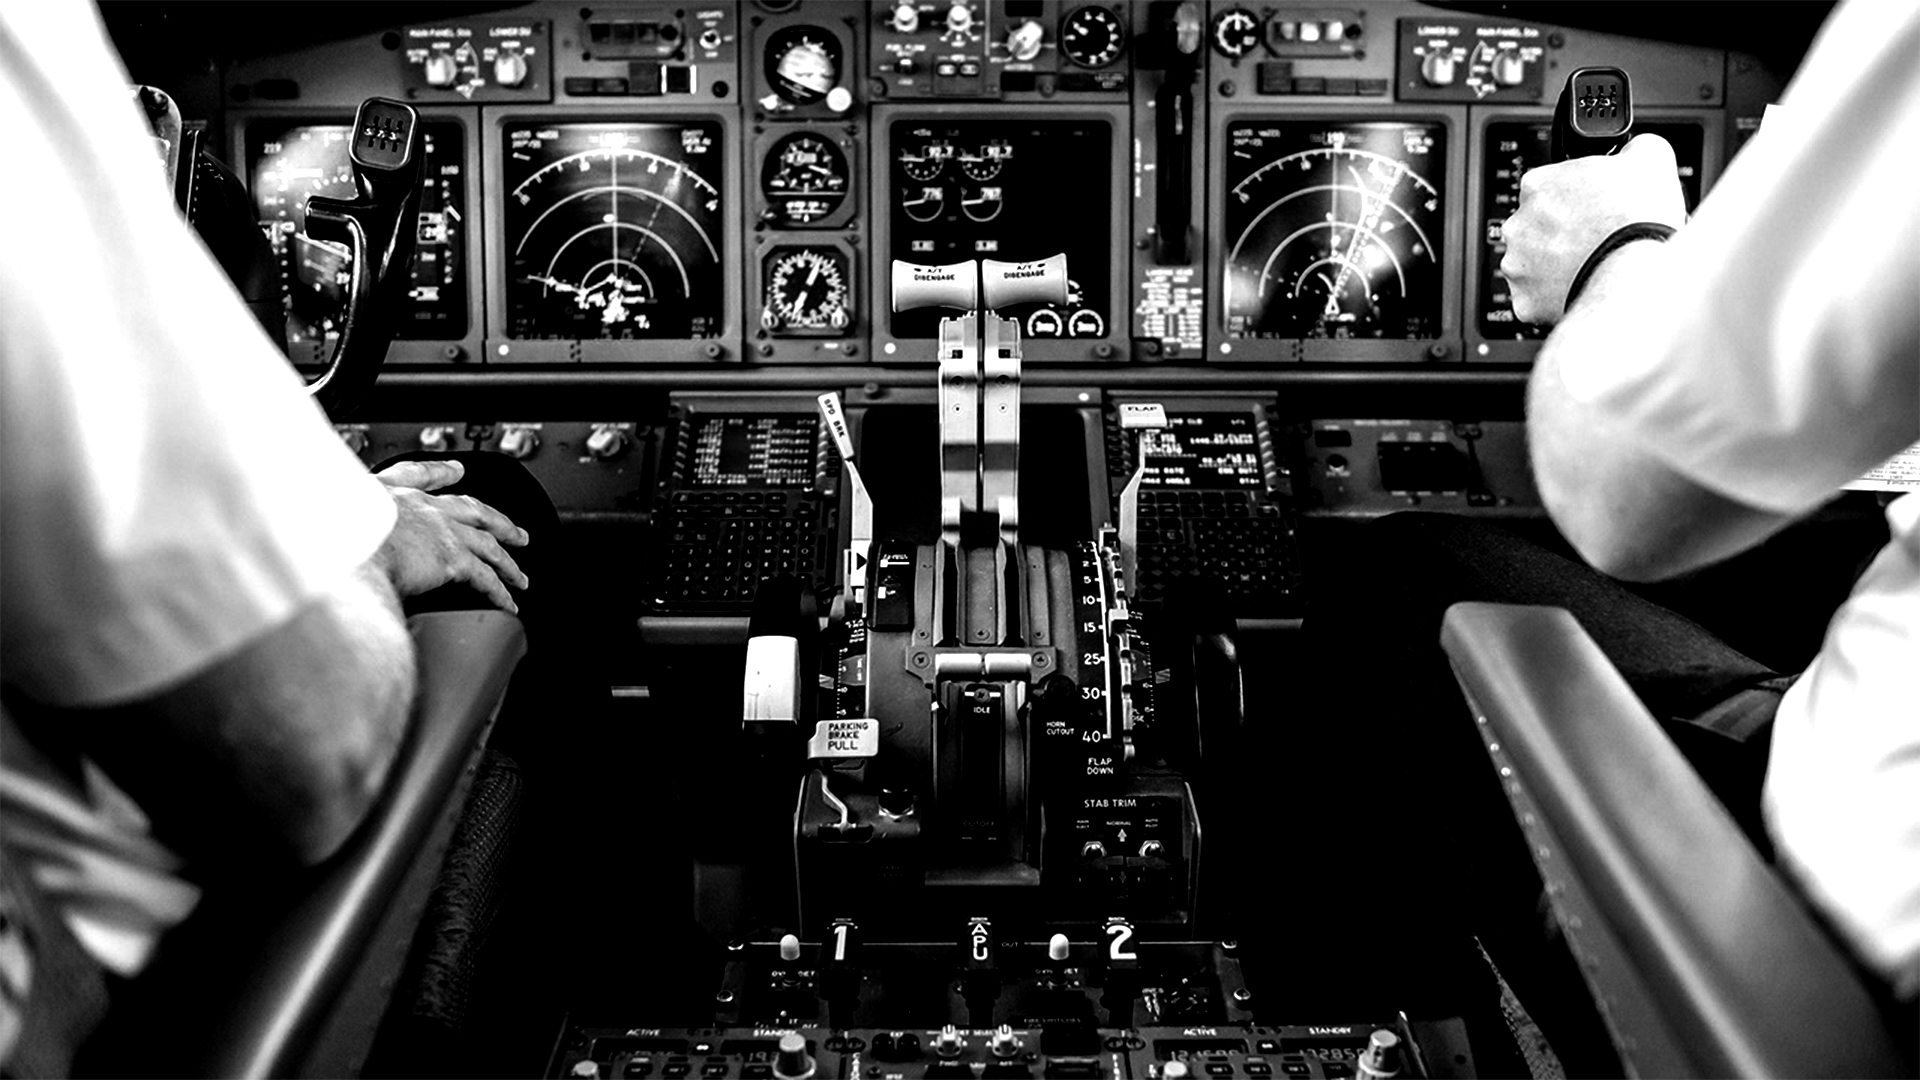 Pilots in a commercial aircraft